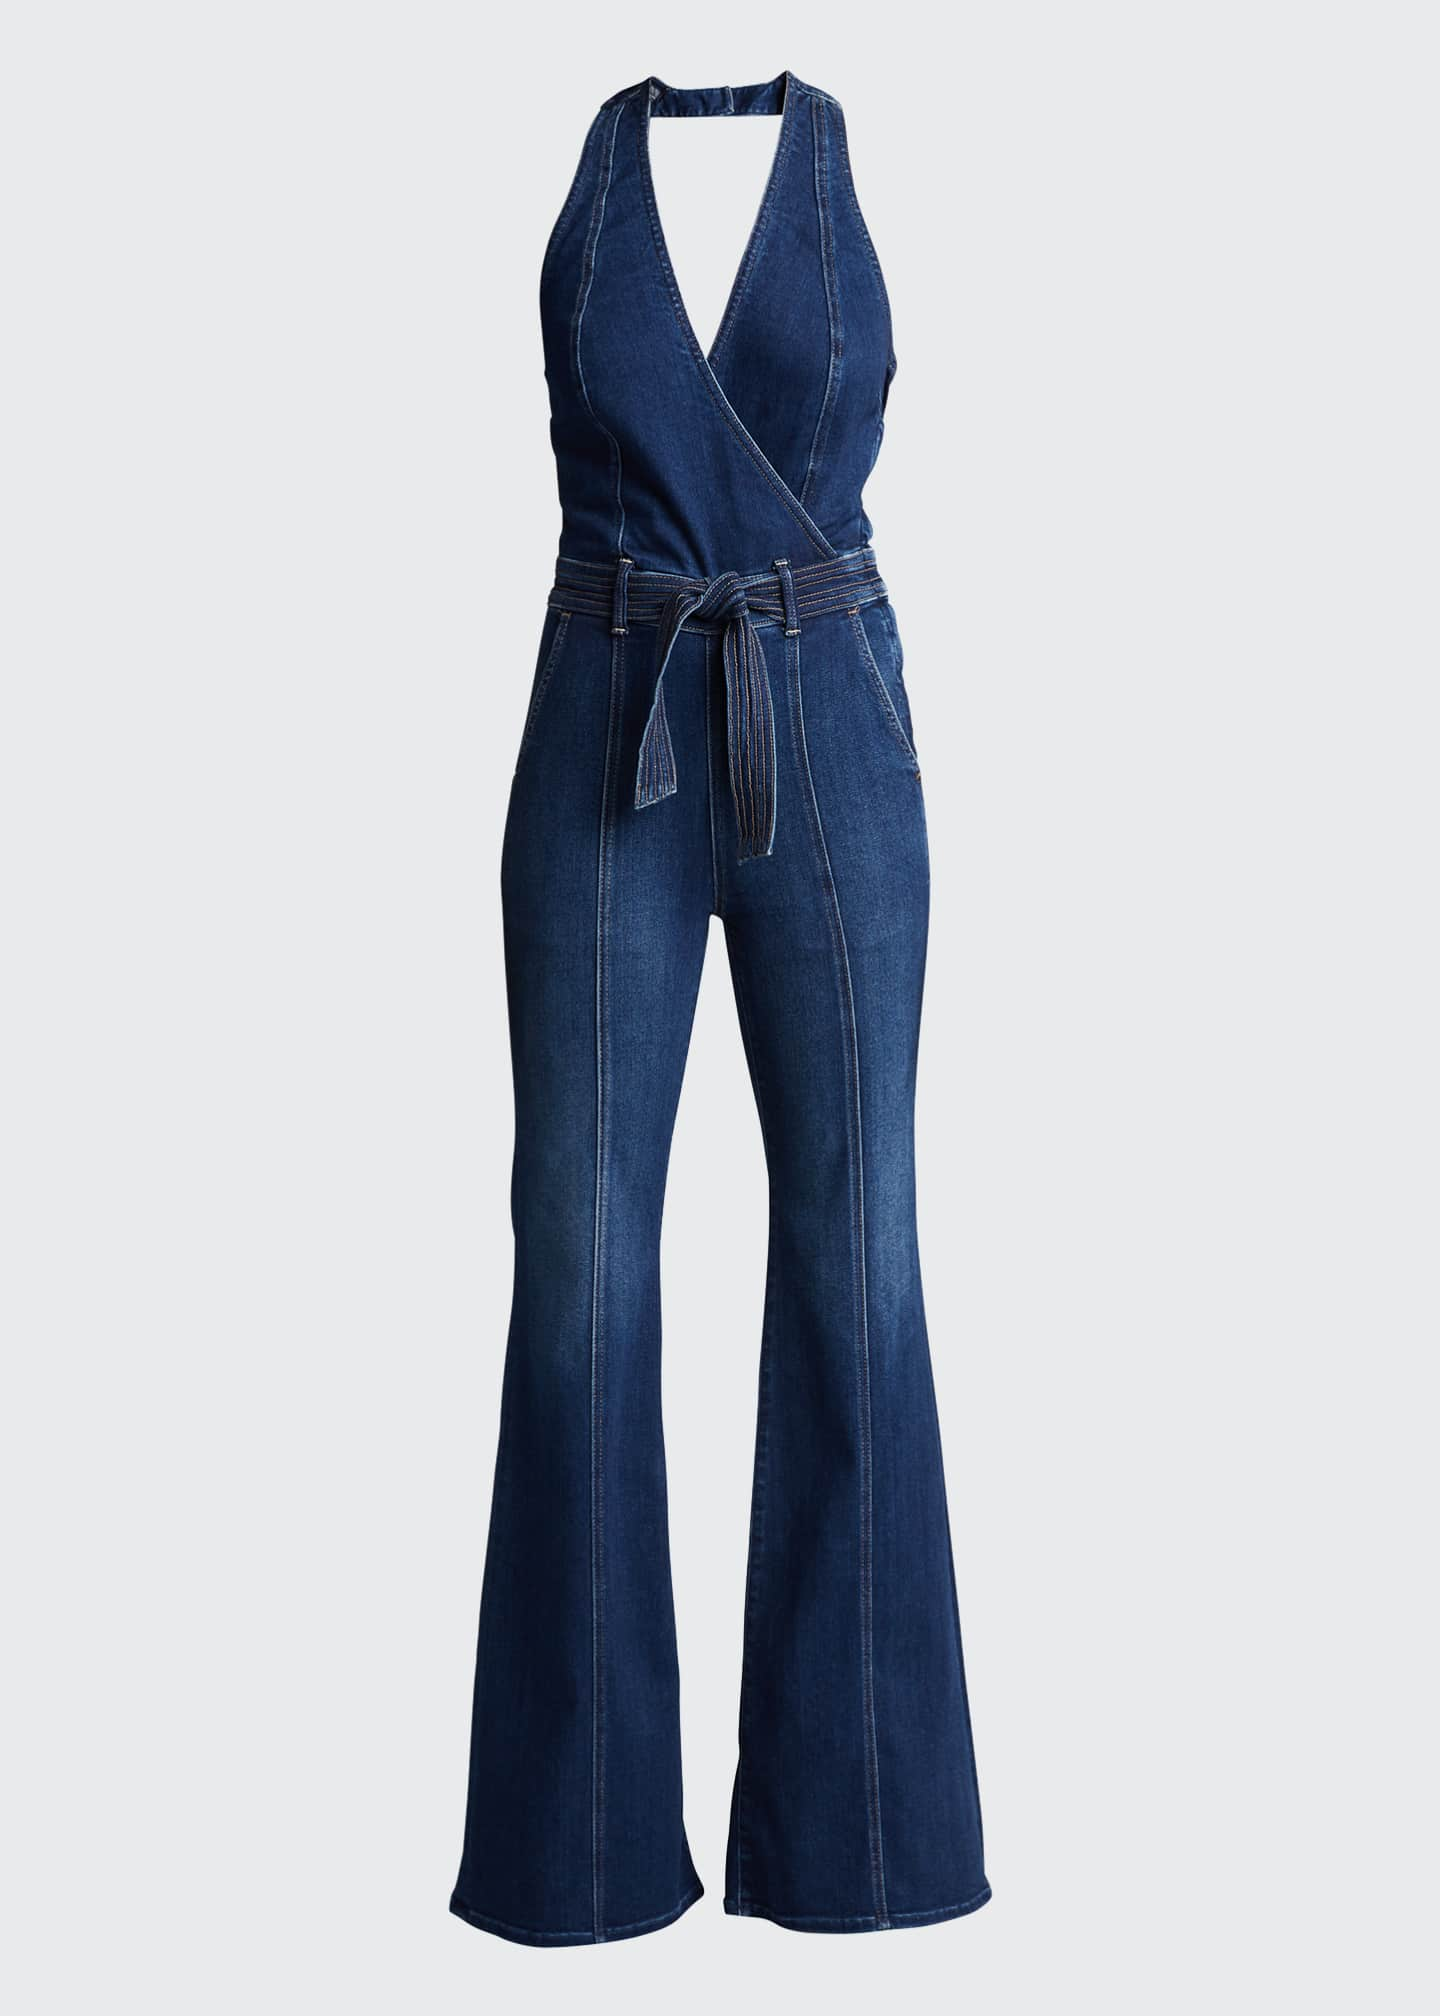 Image 5 of 5: The Halter Doozy Jumpsuit